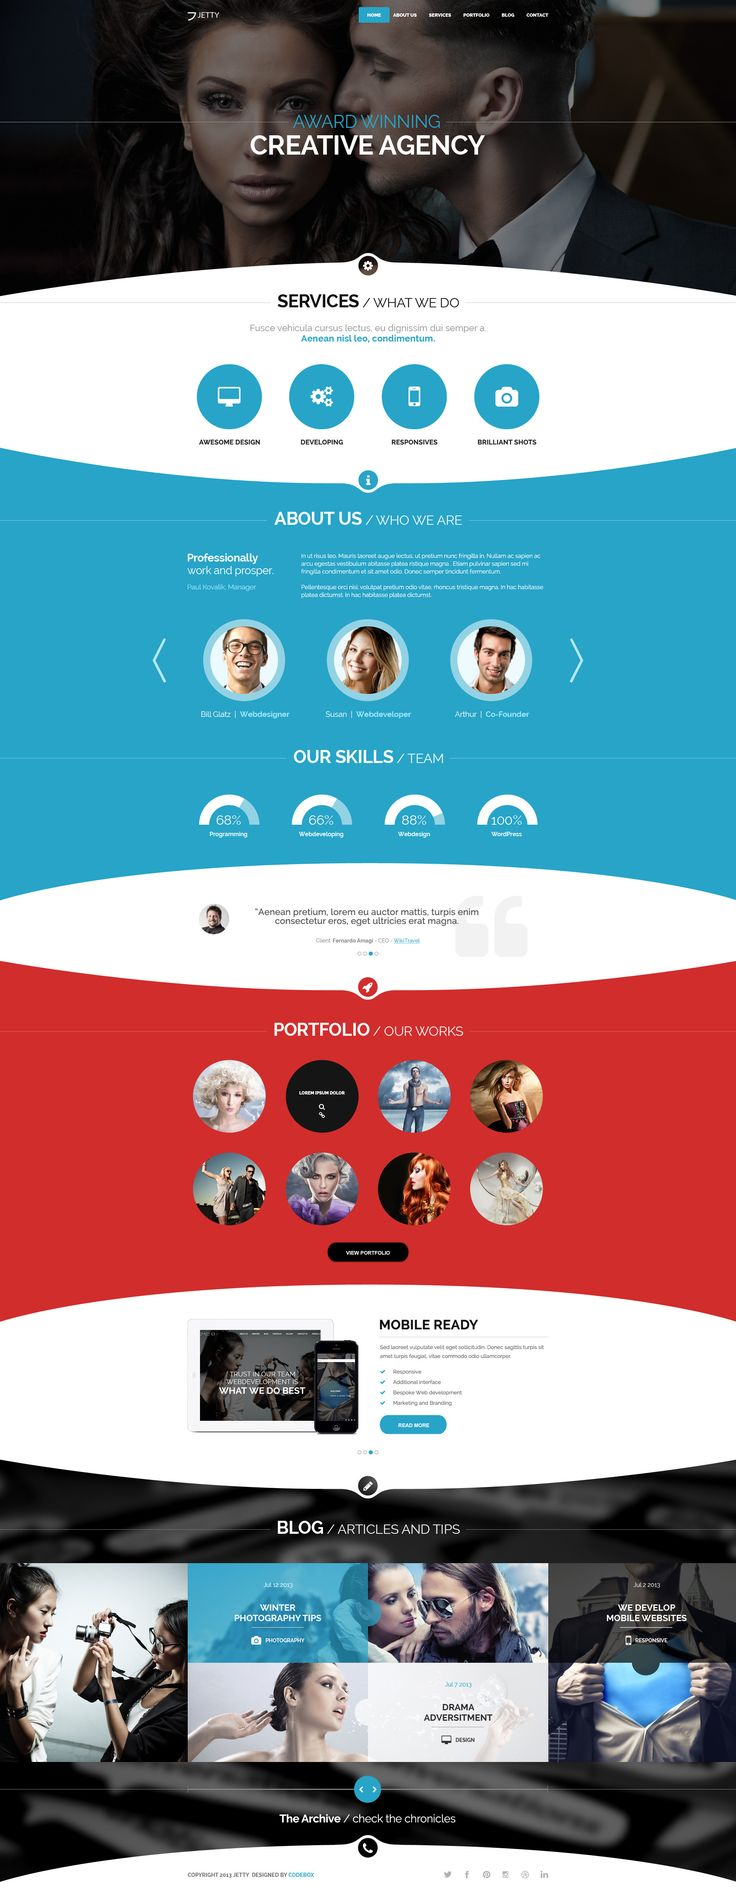 JETTY - PSD Template http://themeforest.net/item/jetty-psd-template/5293097?ref=wpaw #web #design #psd